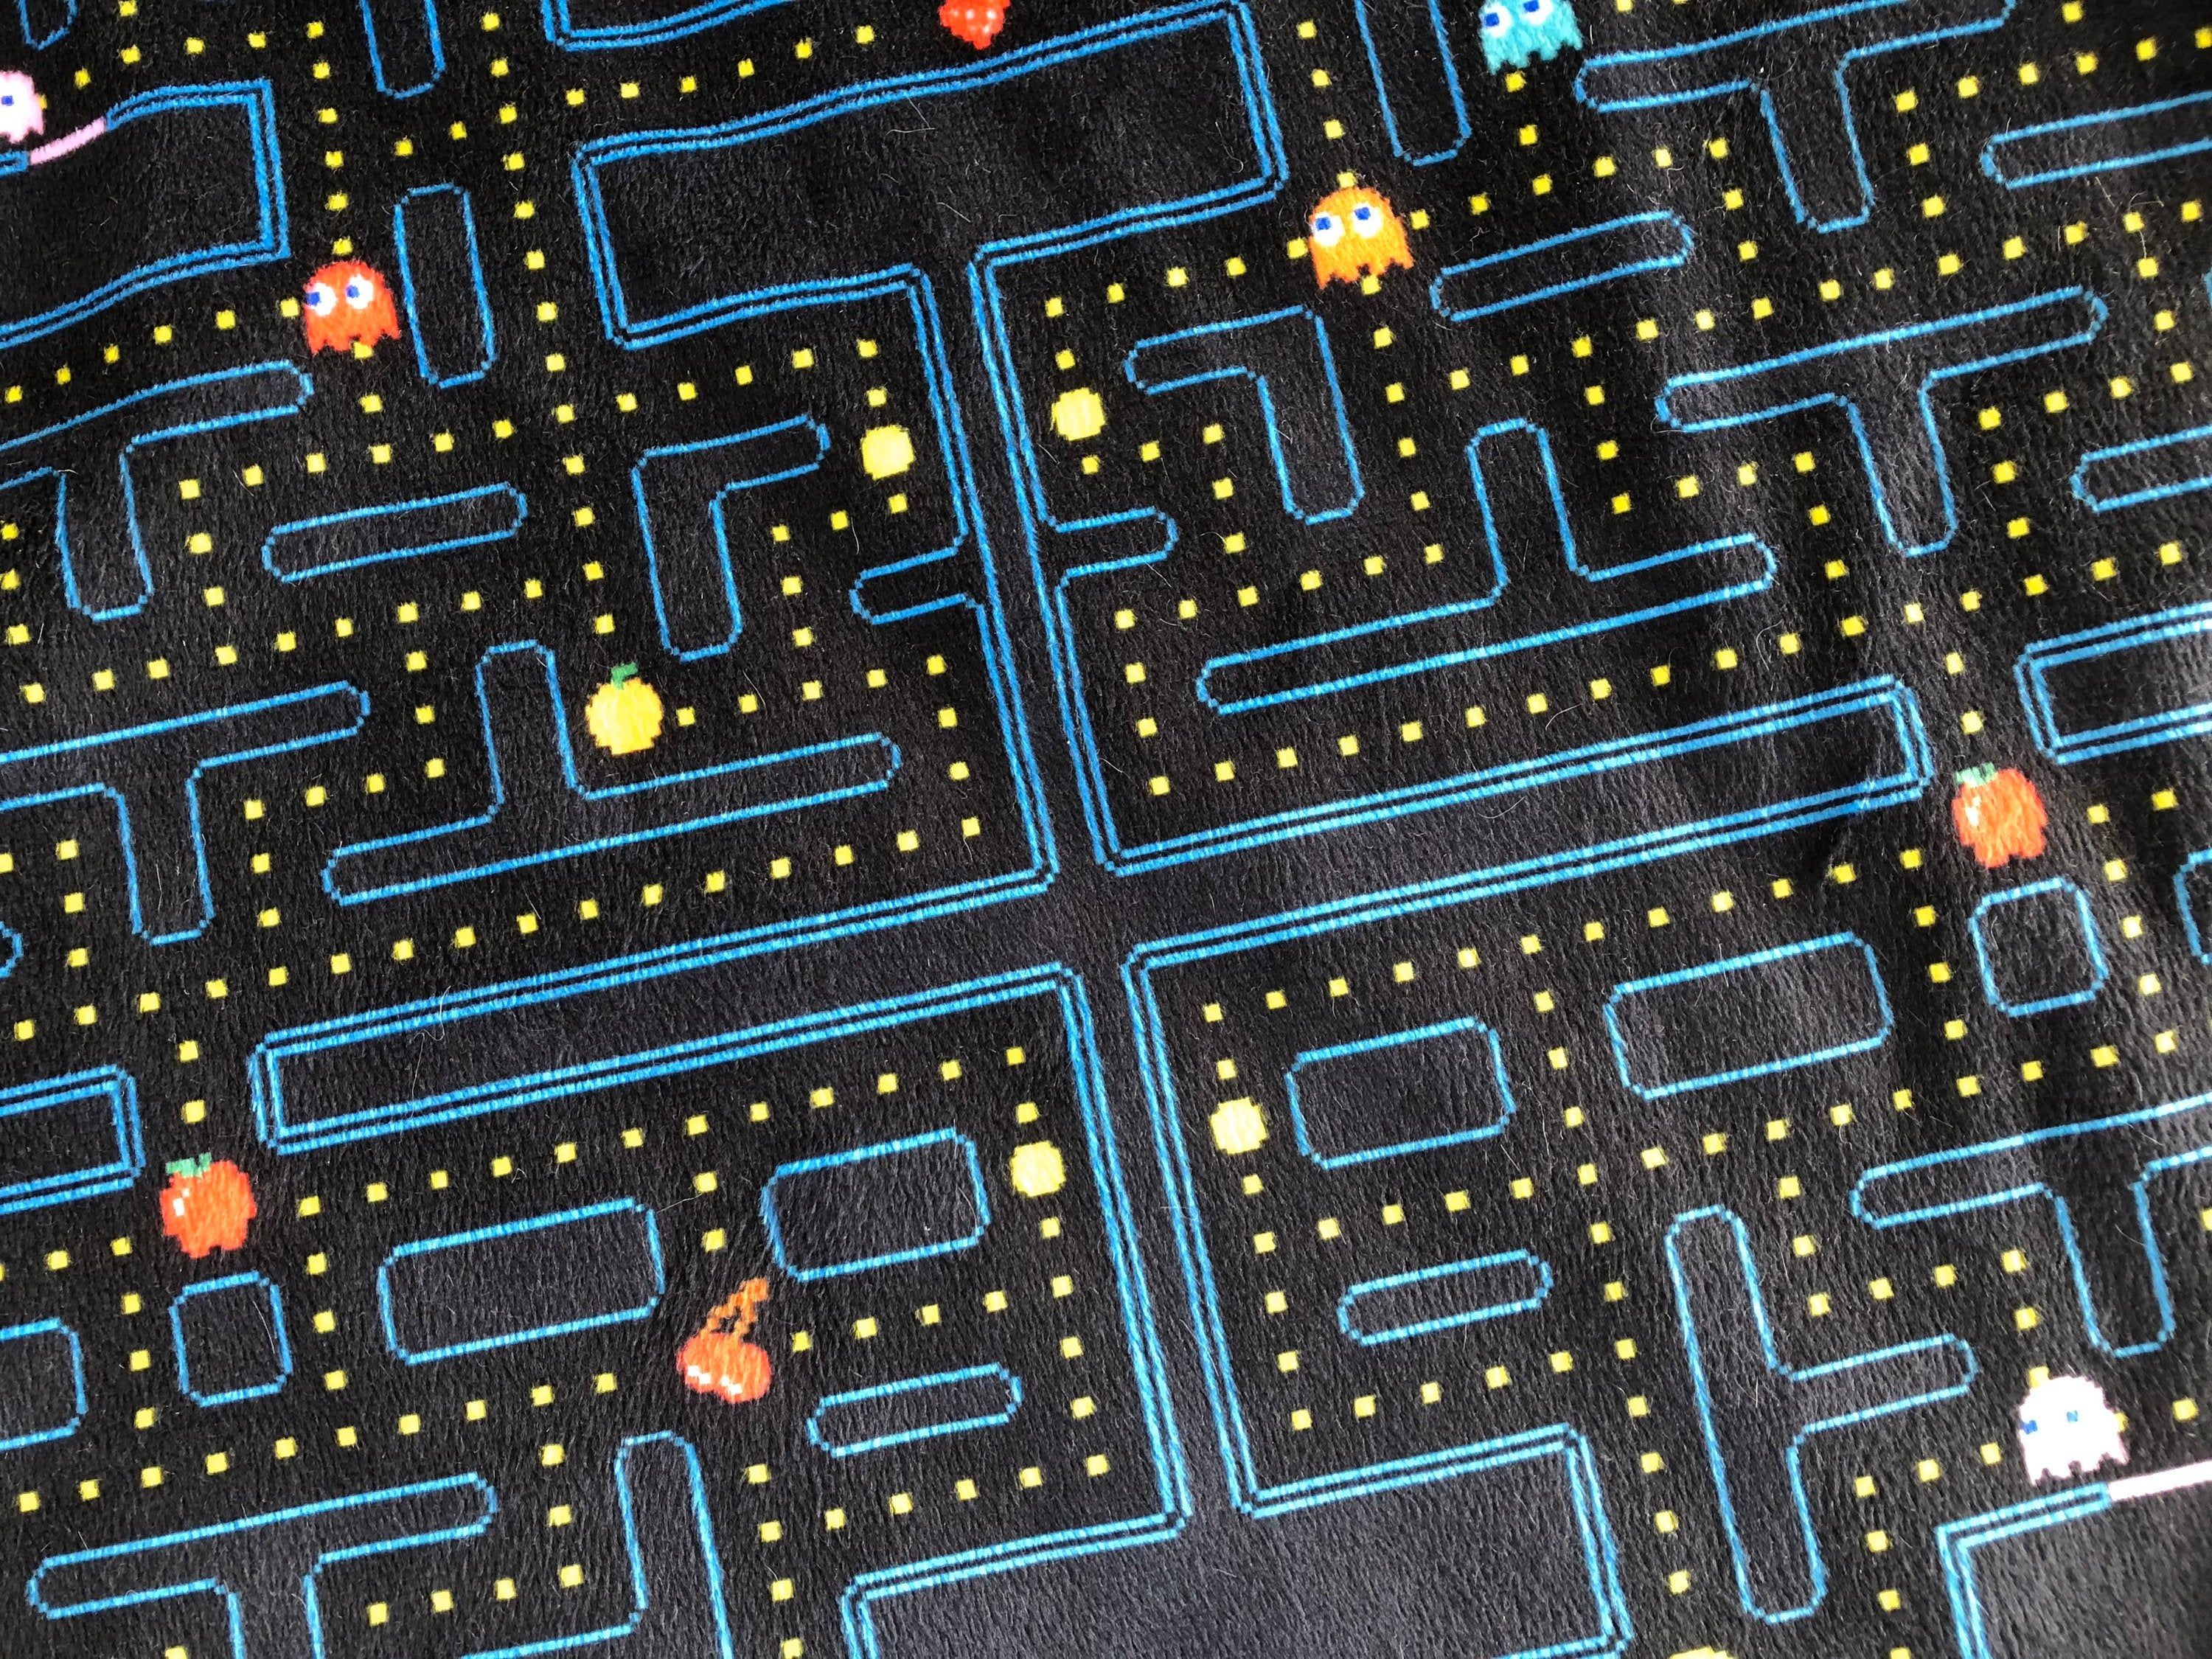 PACMAN map minky blanket - retro video game throw blanket - for baby, child, teen, adult - toddler lovey (security blanket)